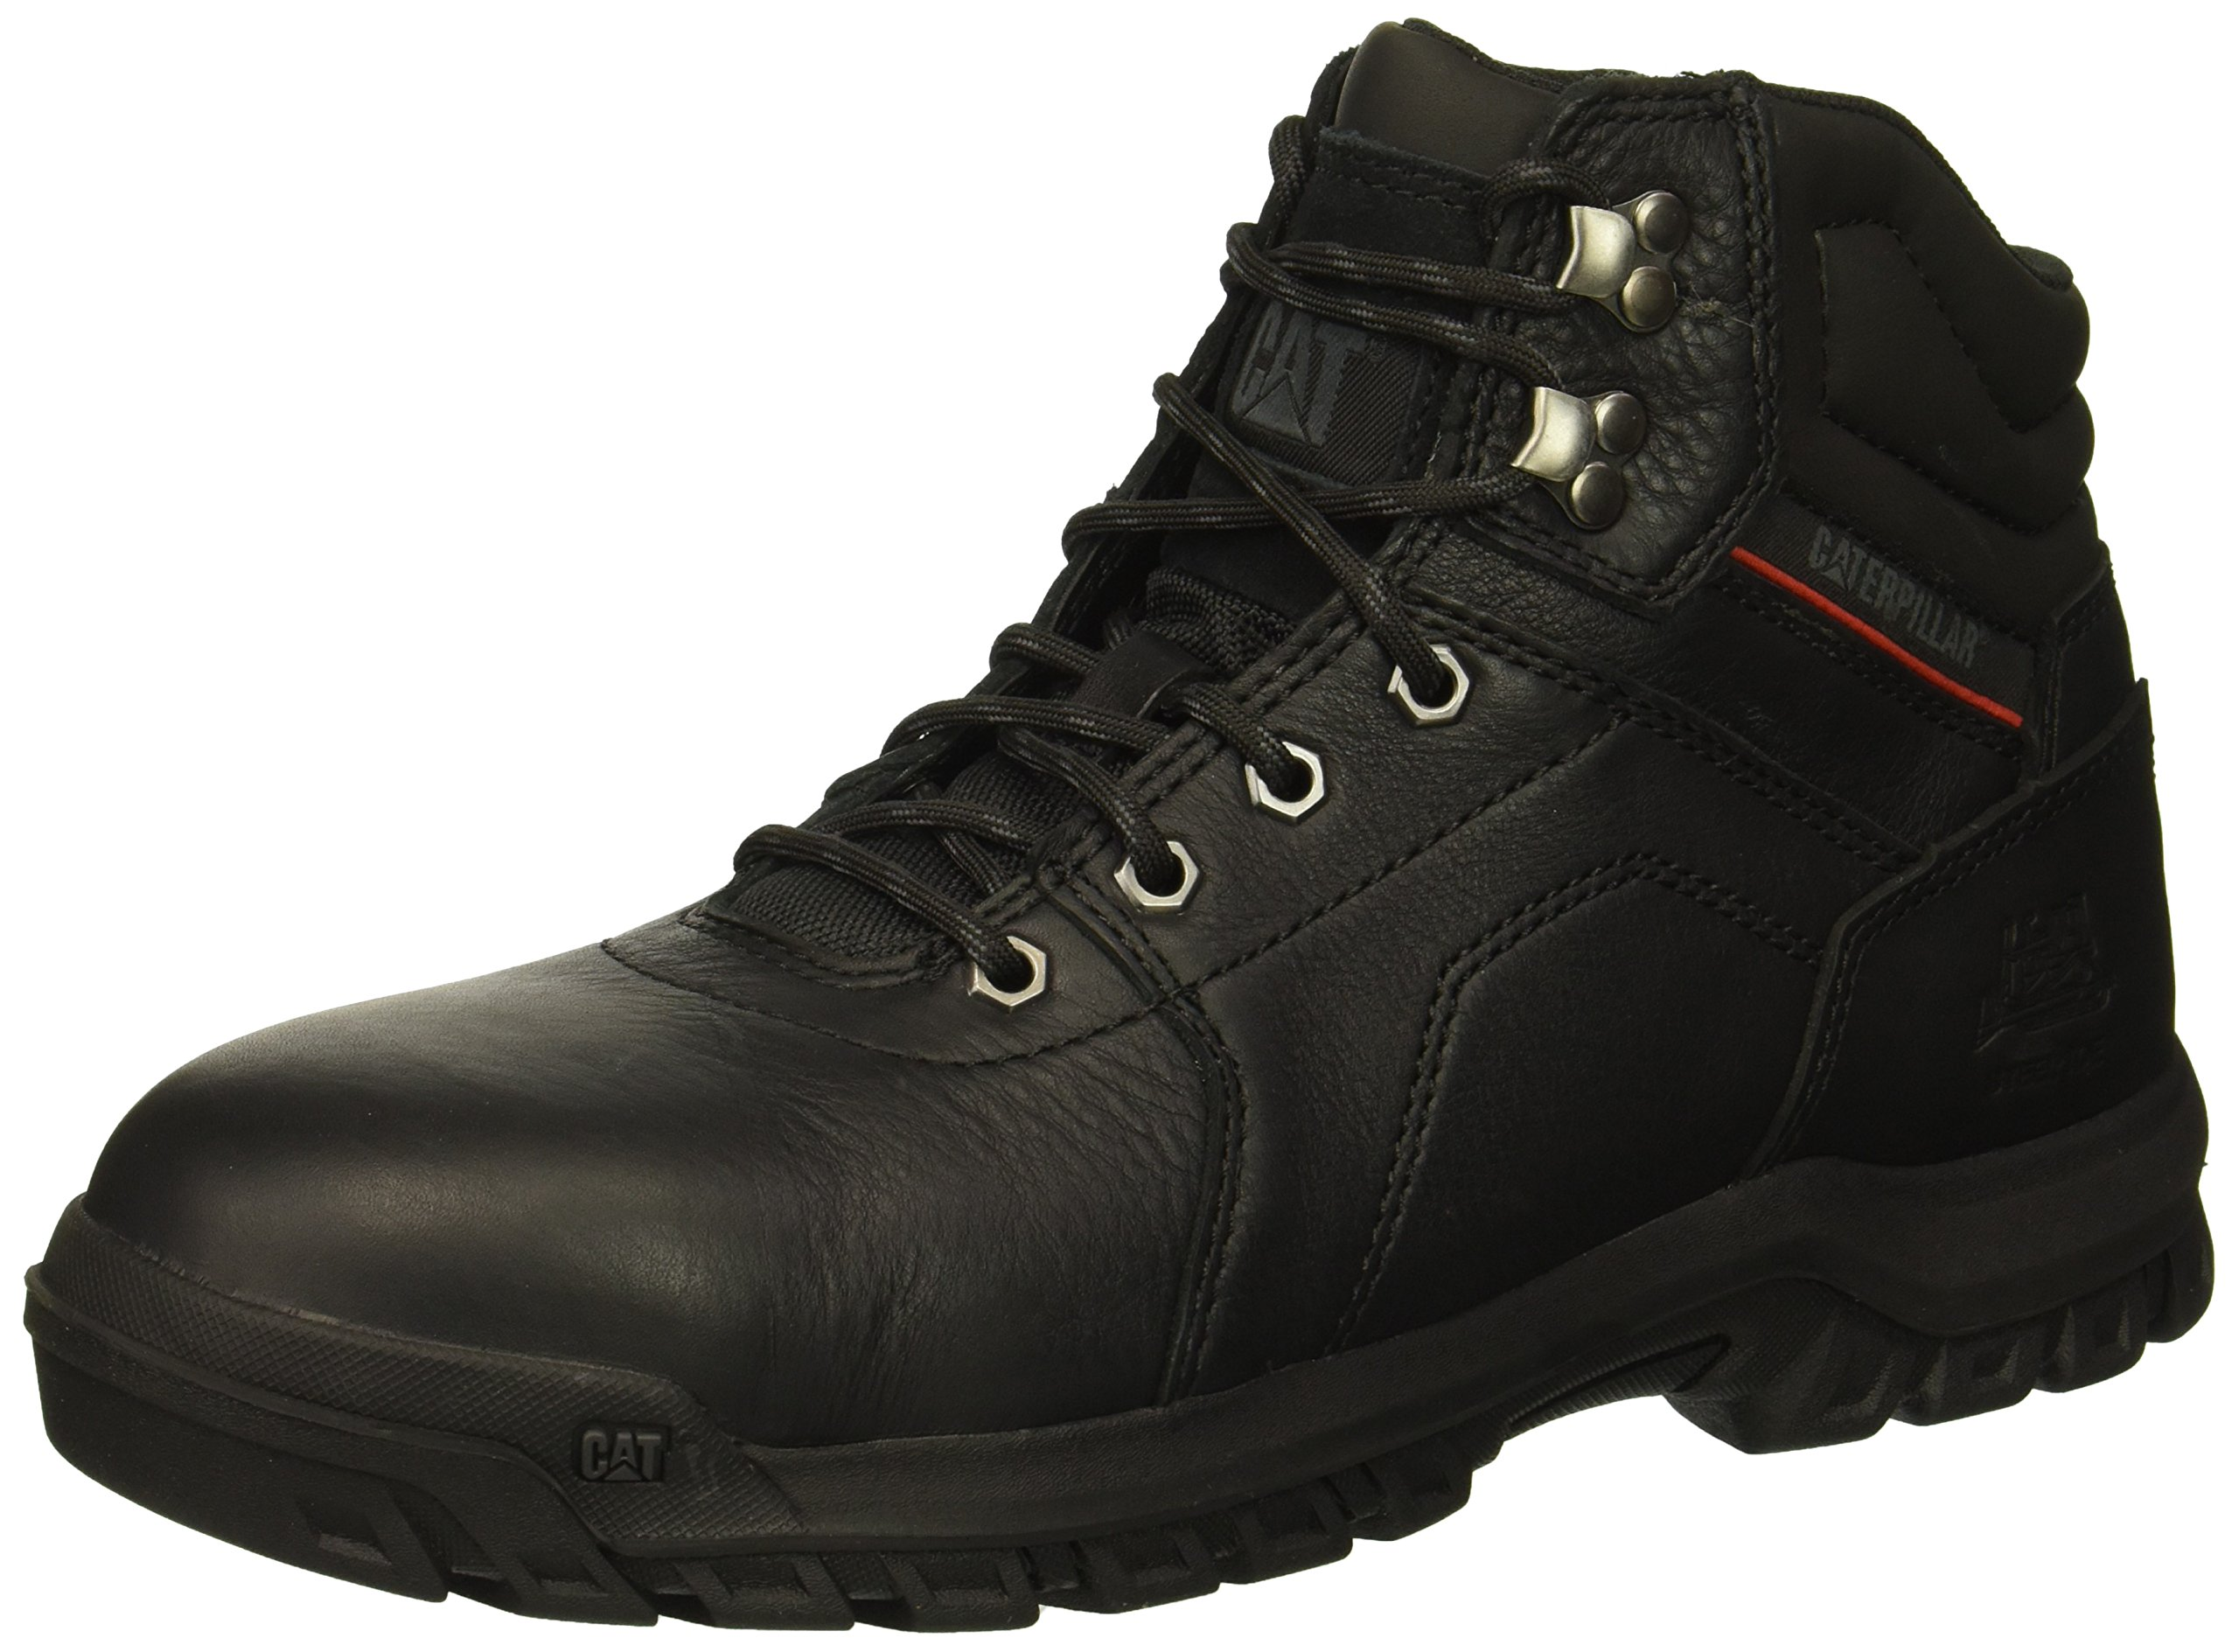 Caterpillar Men's Diffuse Steel Toe Industrial Boot, Black, 10 Medium US